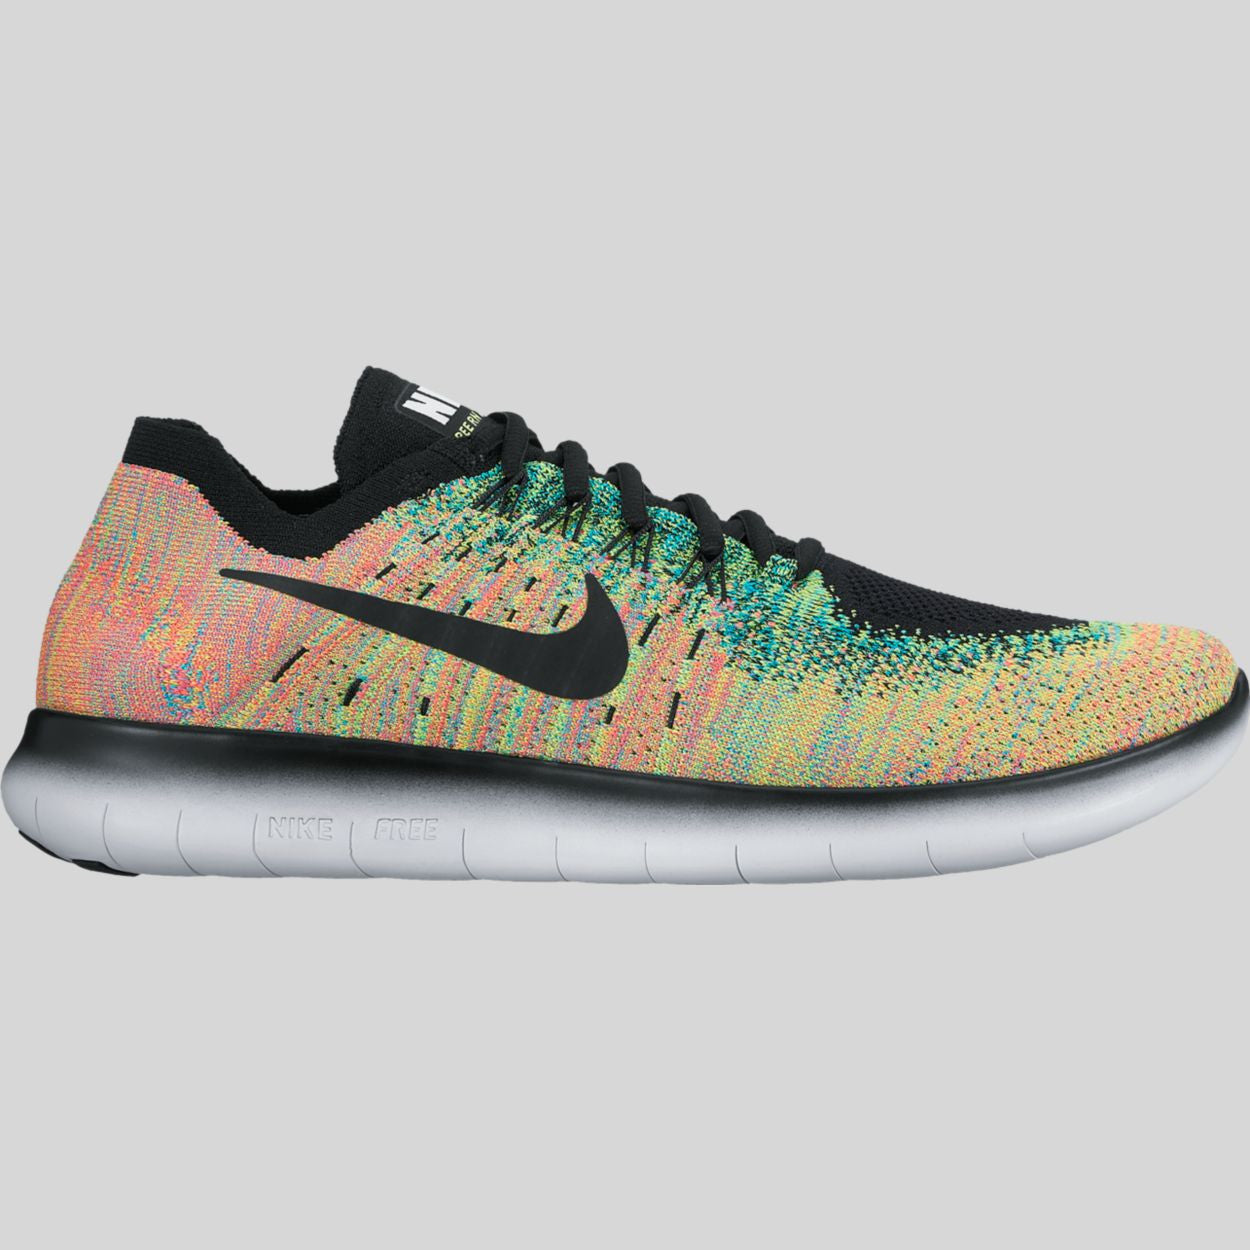 620a96c562210 Nike Free RN Flyknit 2017 Black Blue Lagoon Hot Punch (880843-005 ...